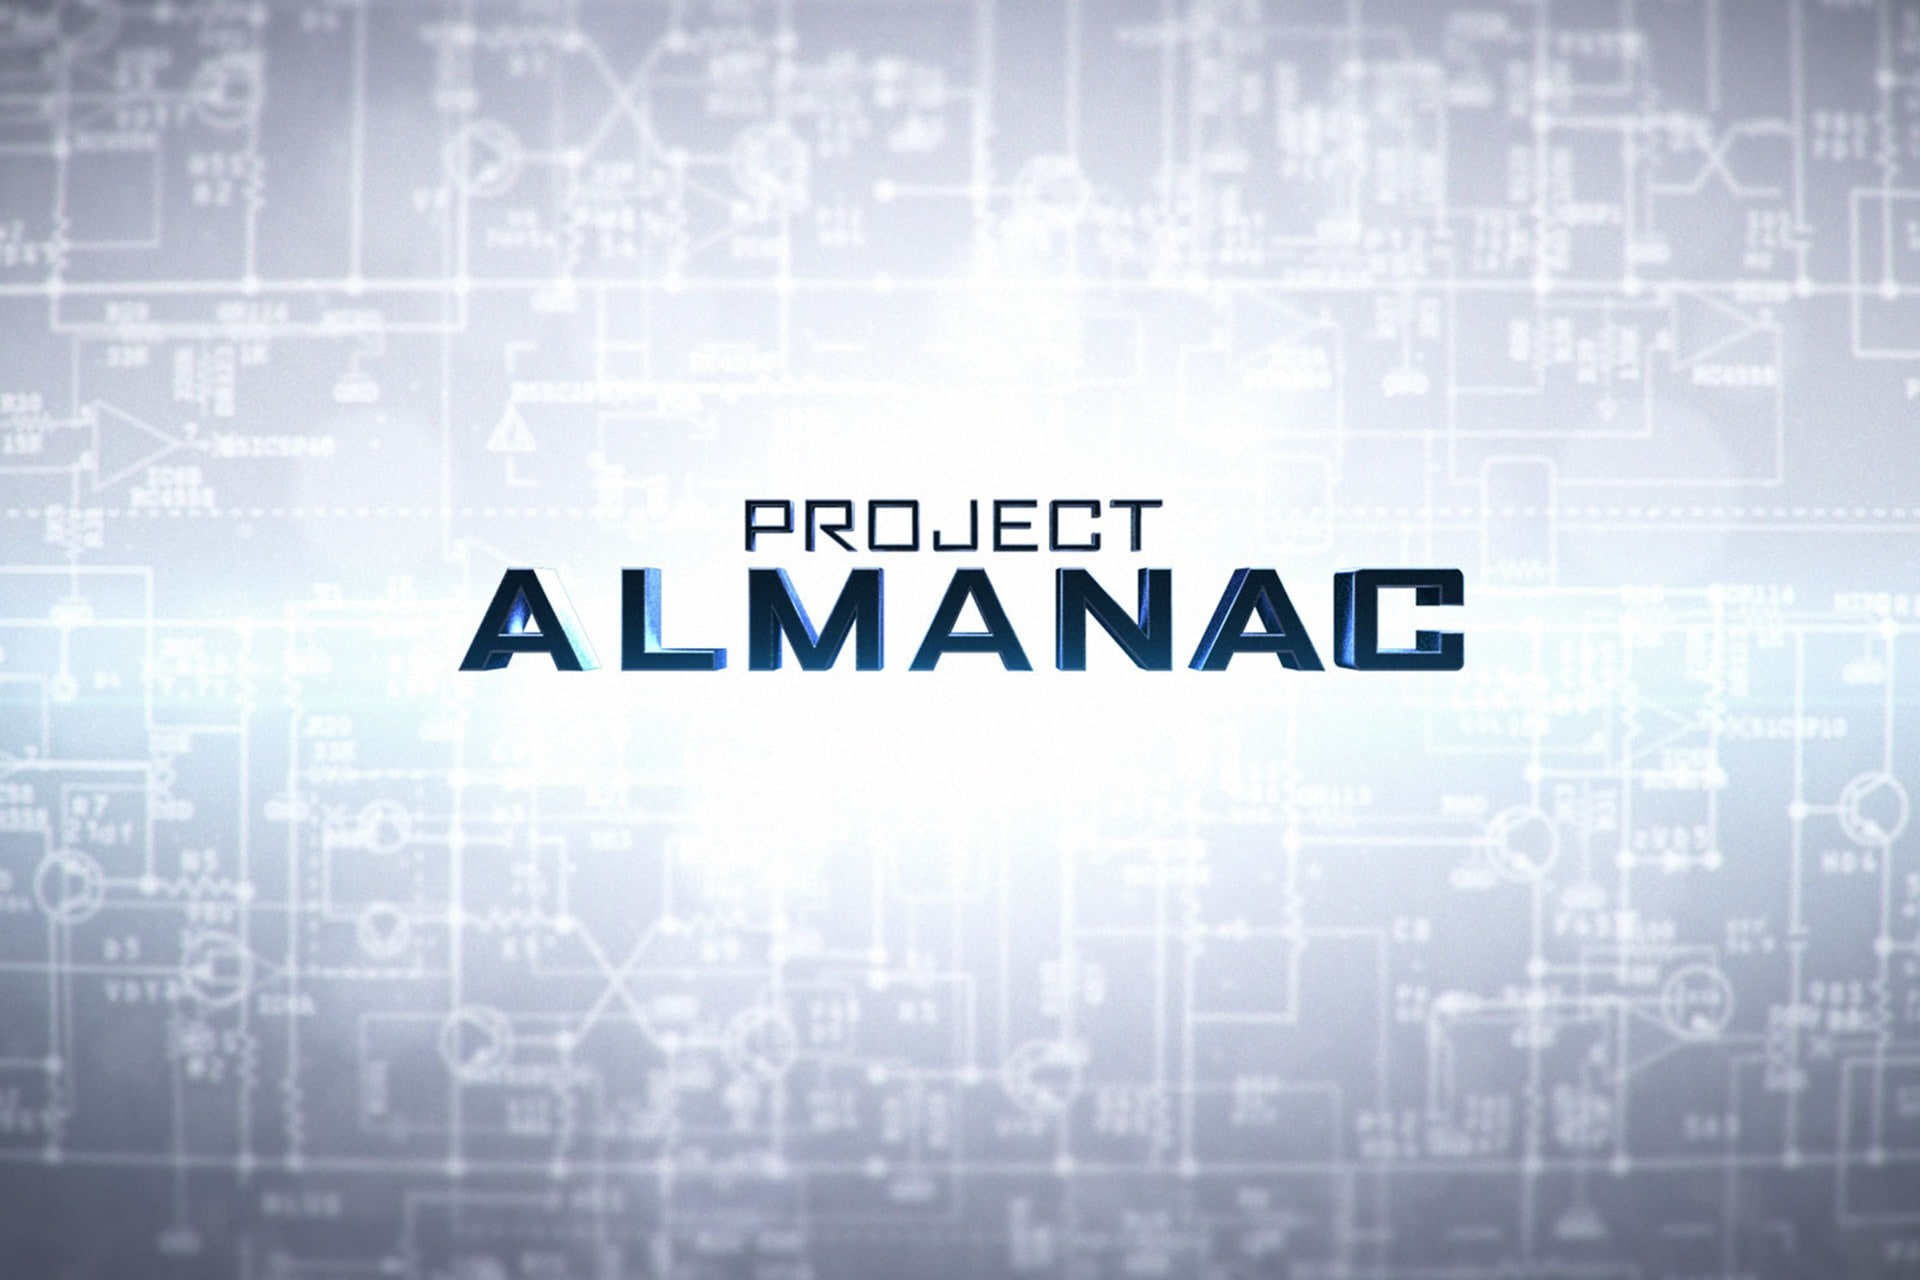 Project Almanac Desktop wallpapers